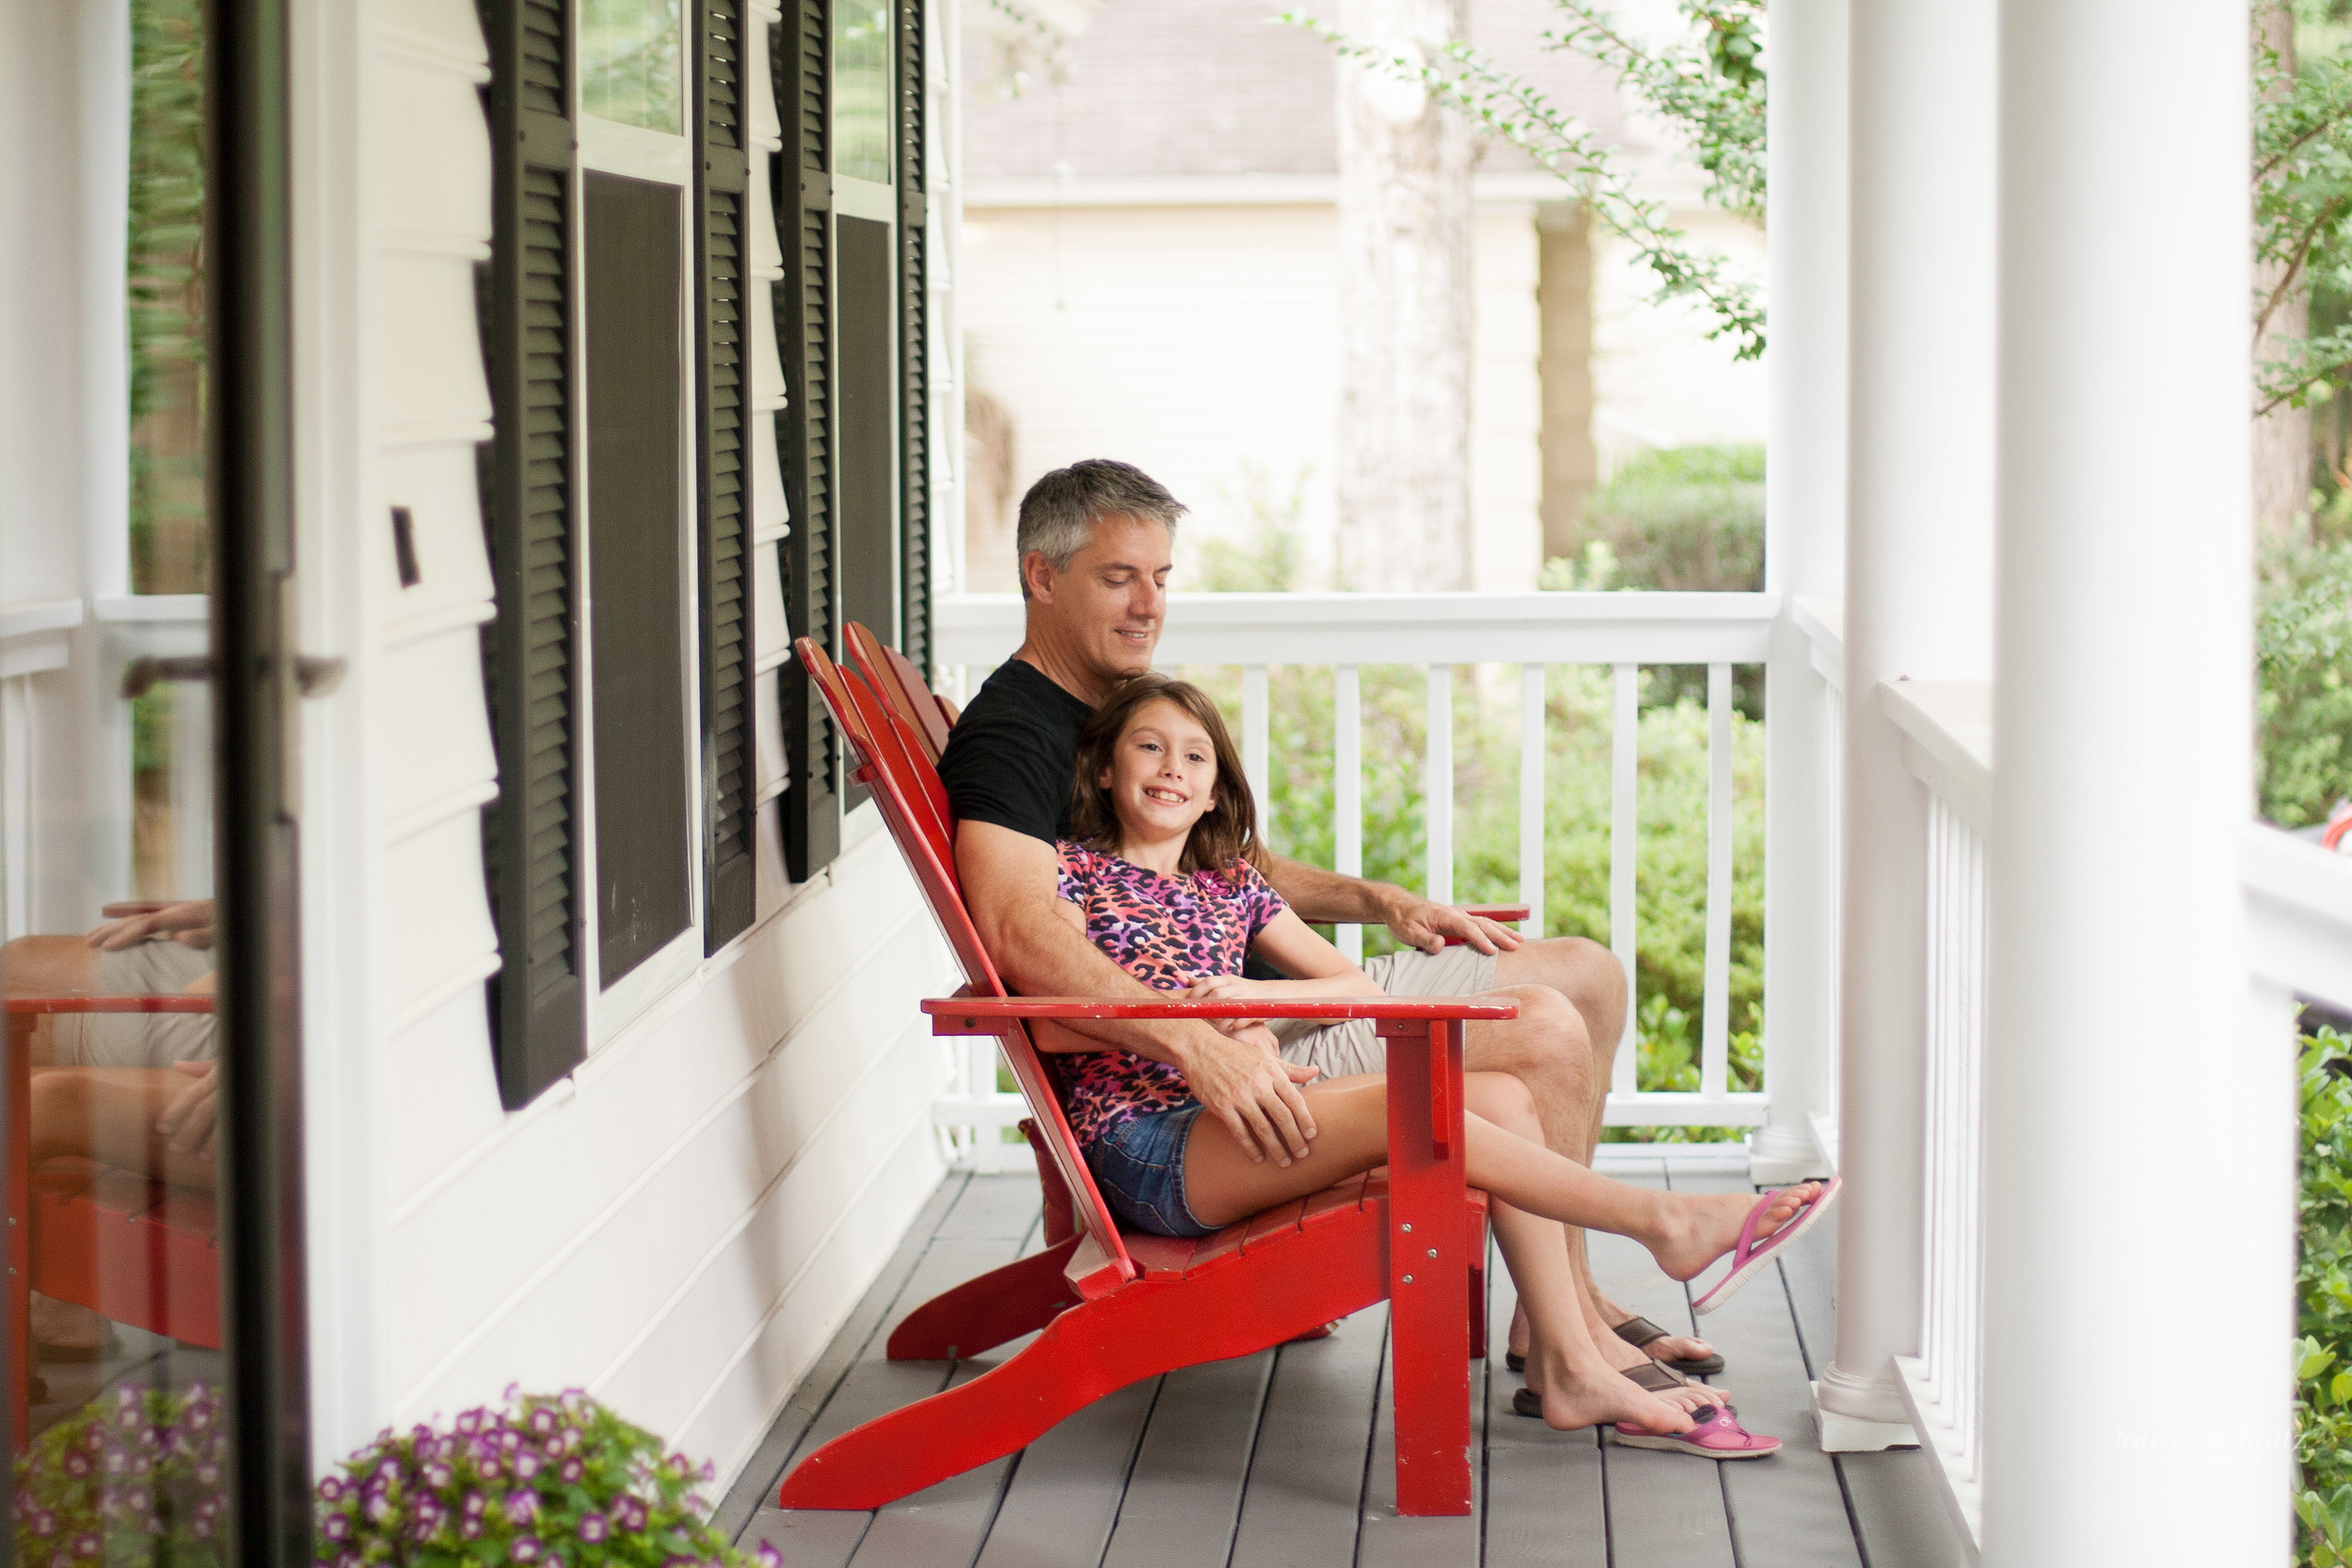 Father and Daughter bonding on porch